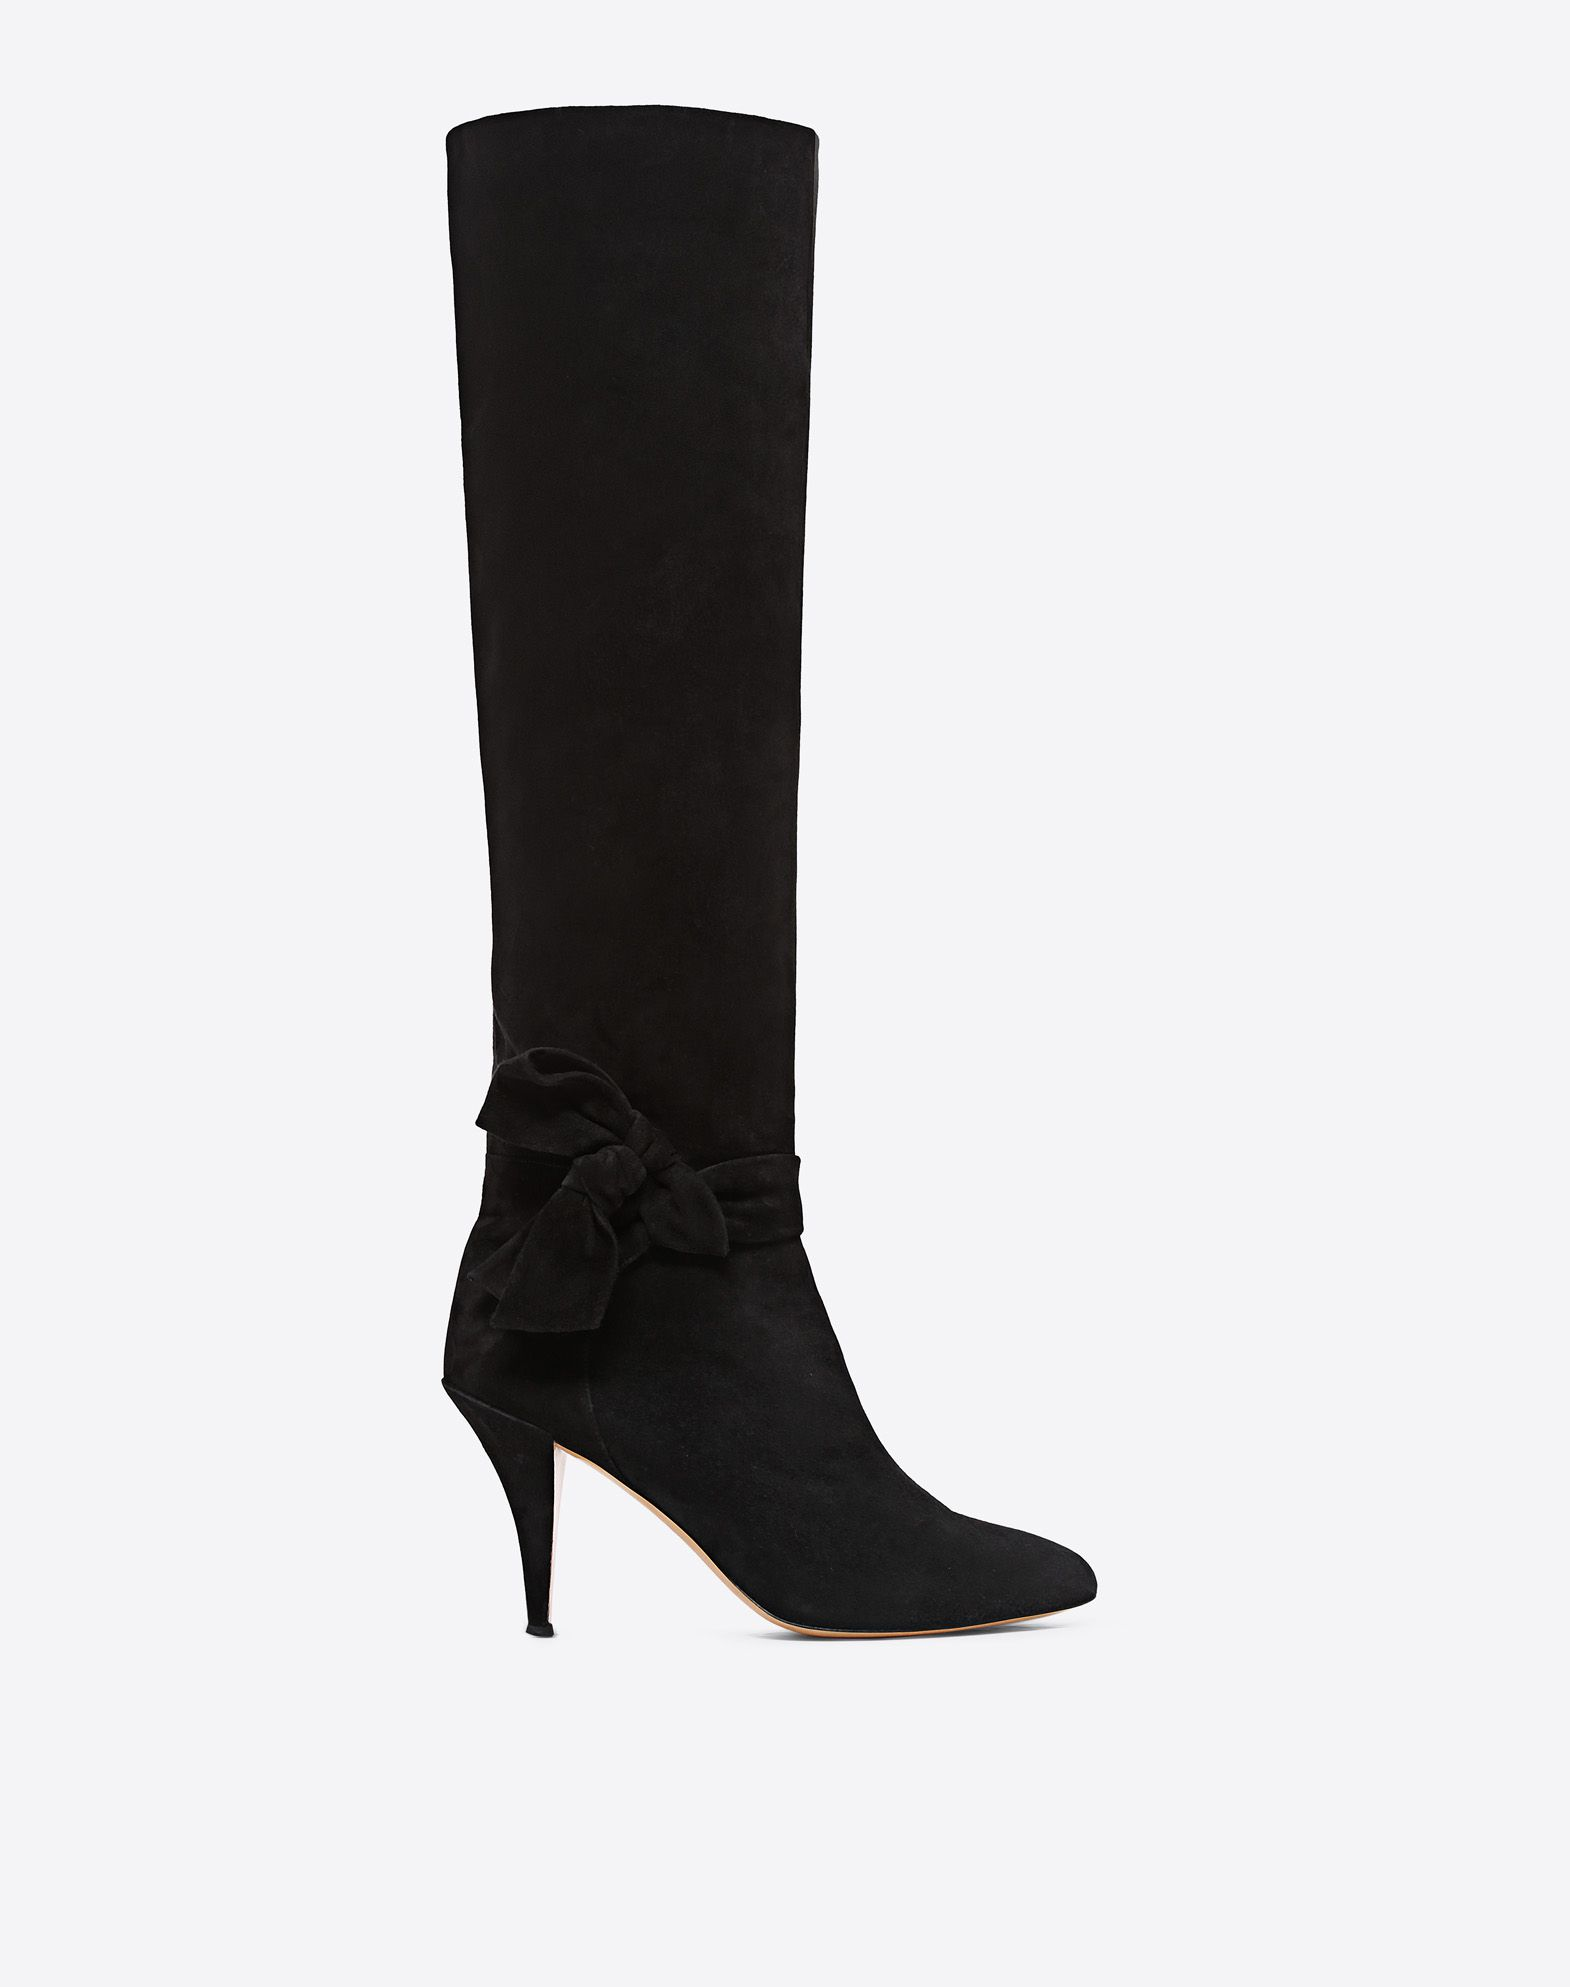 VALENTINO GARAVANI Knee-High Bow Boot in Suede Boot D f